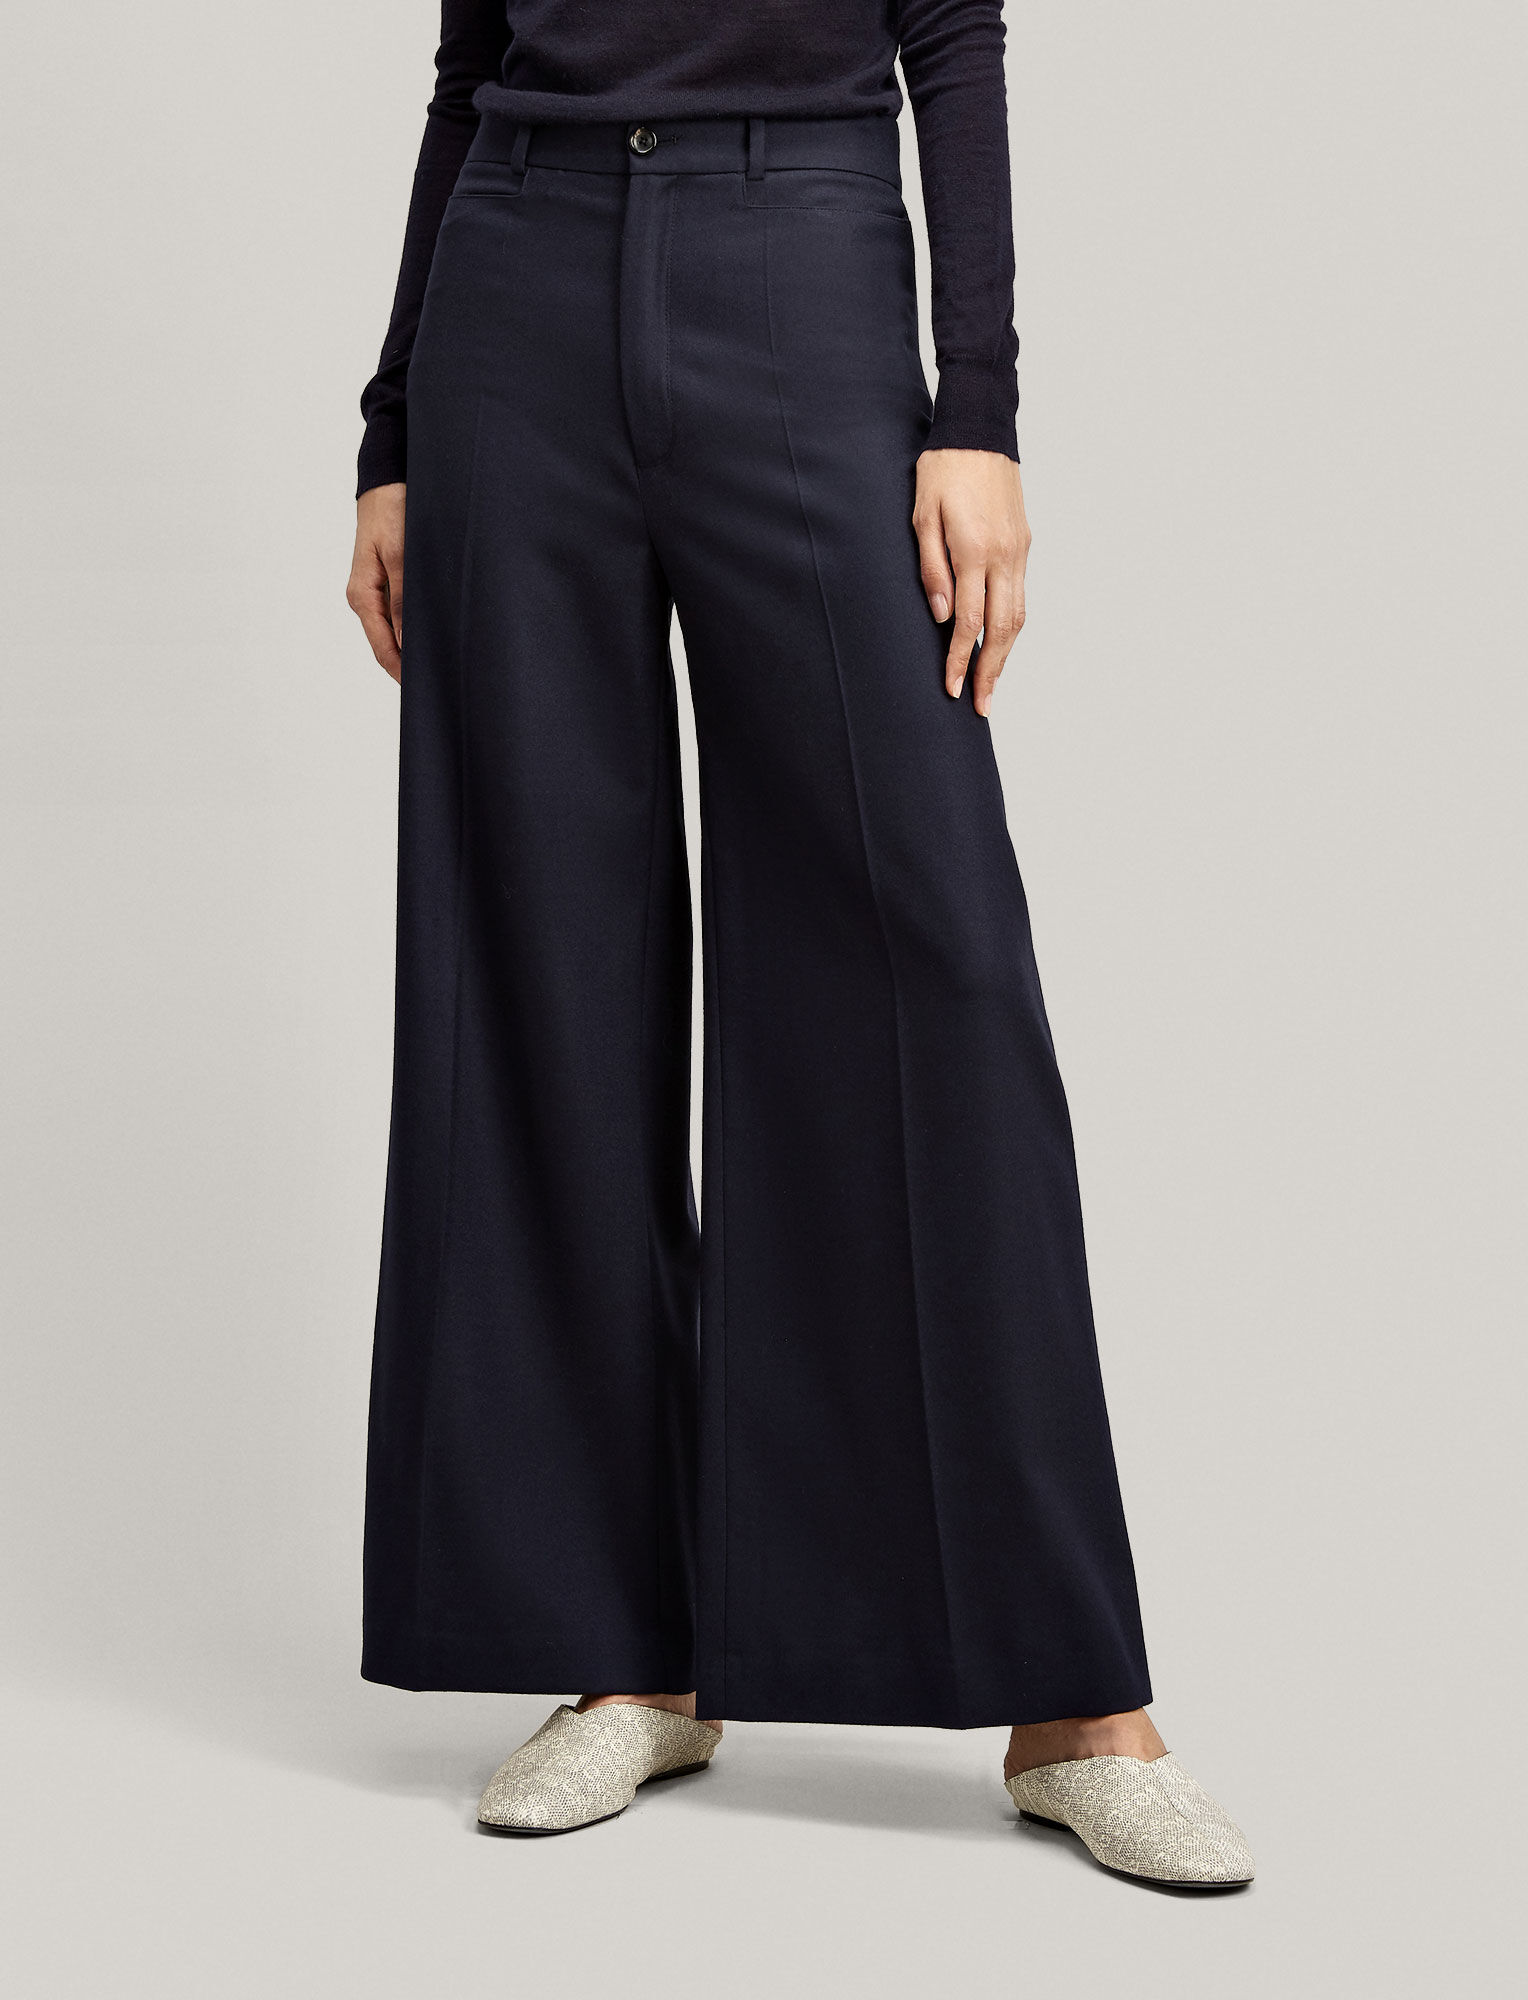 Joseph, Pantalon Dana en flanelle stretch, in NAVY